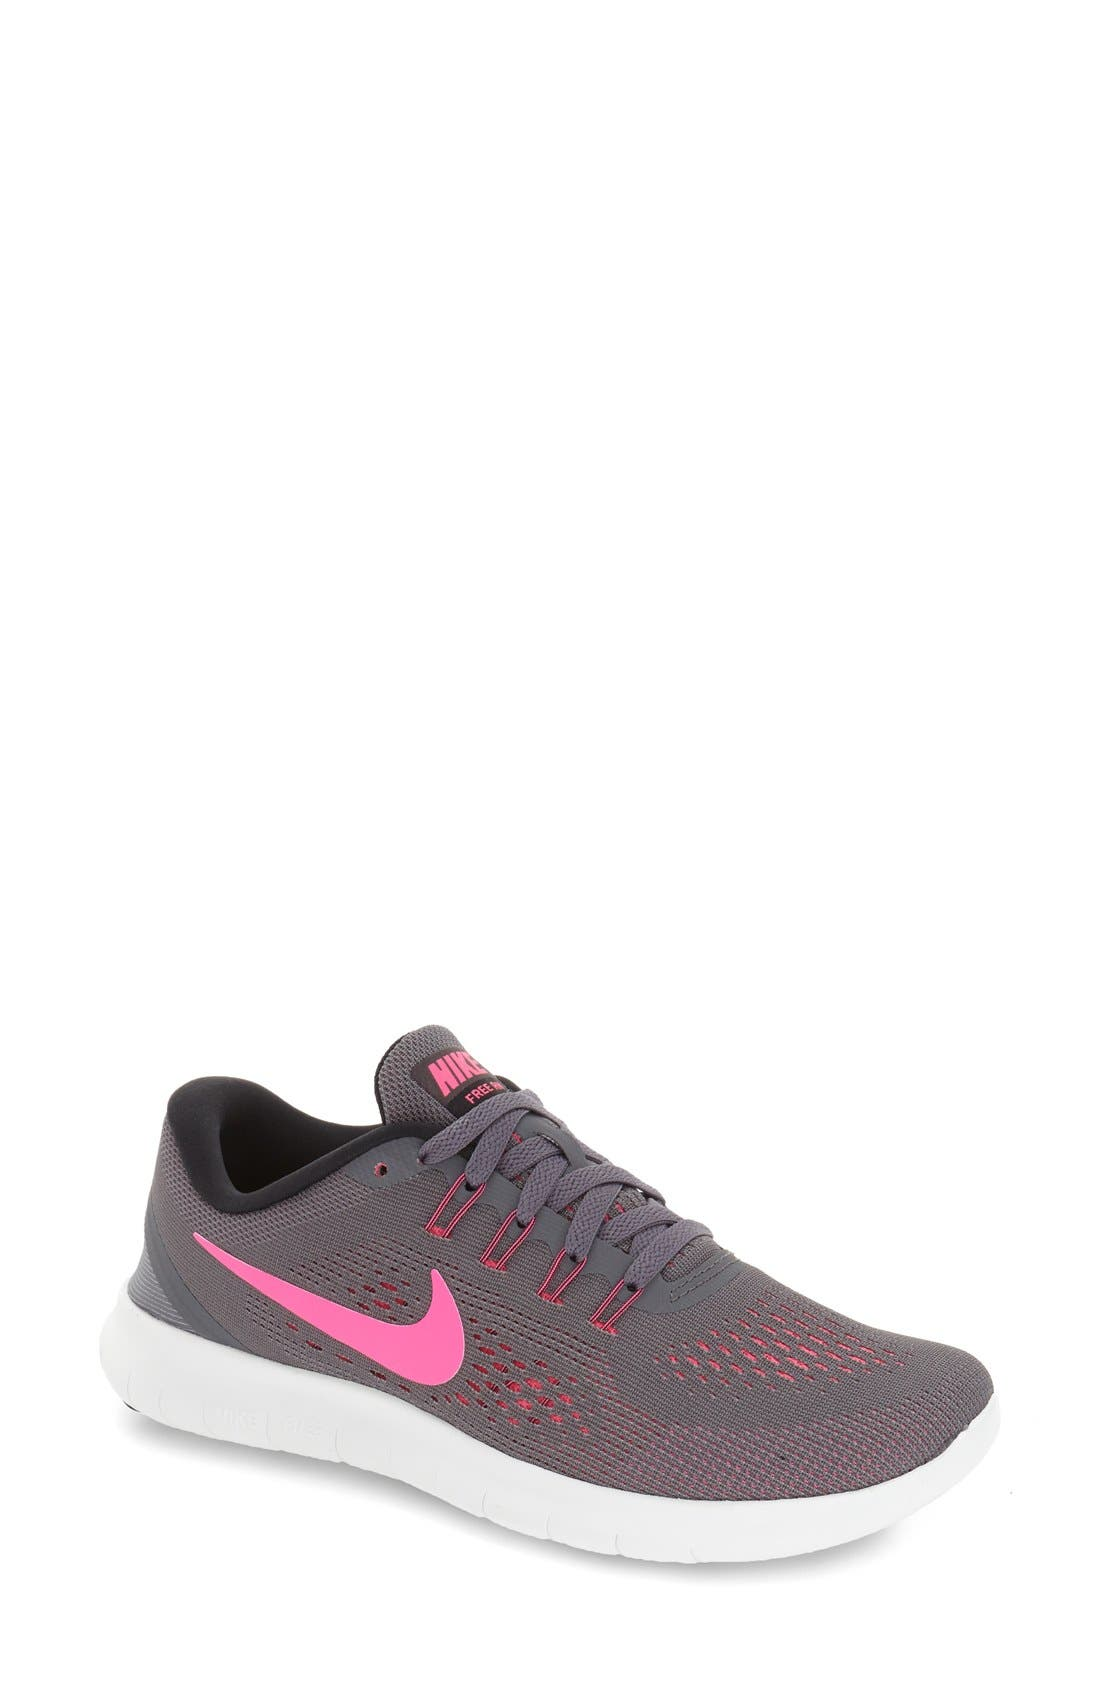 Alternate Image 1 Selected - Nike Free RN Running Shoe (Women)